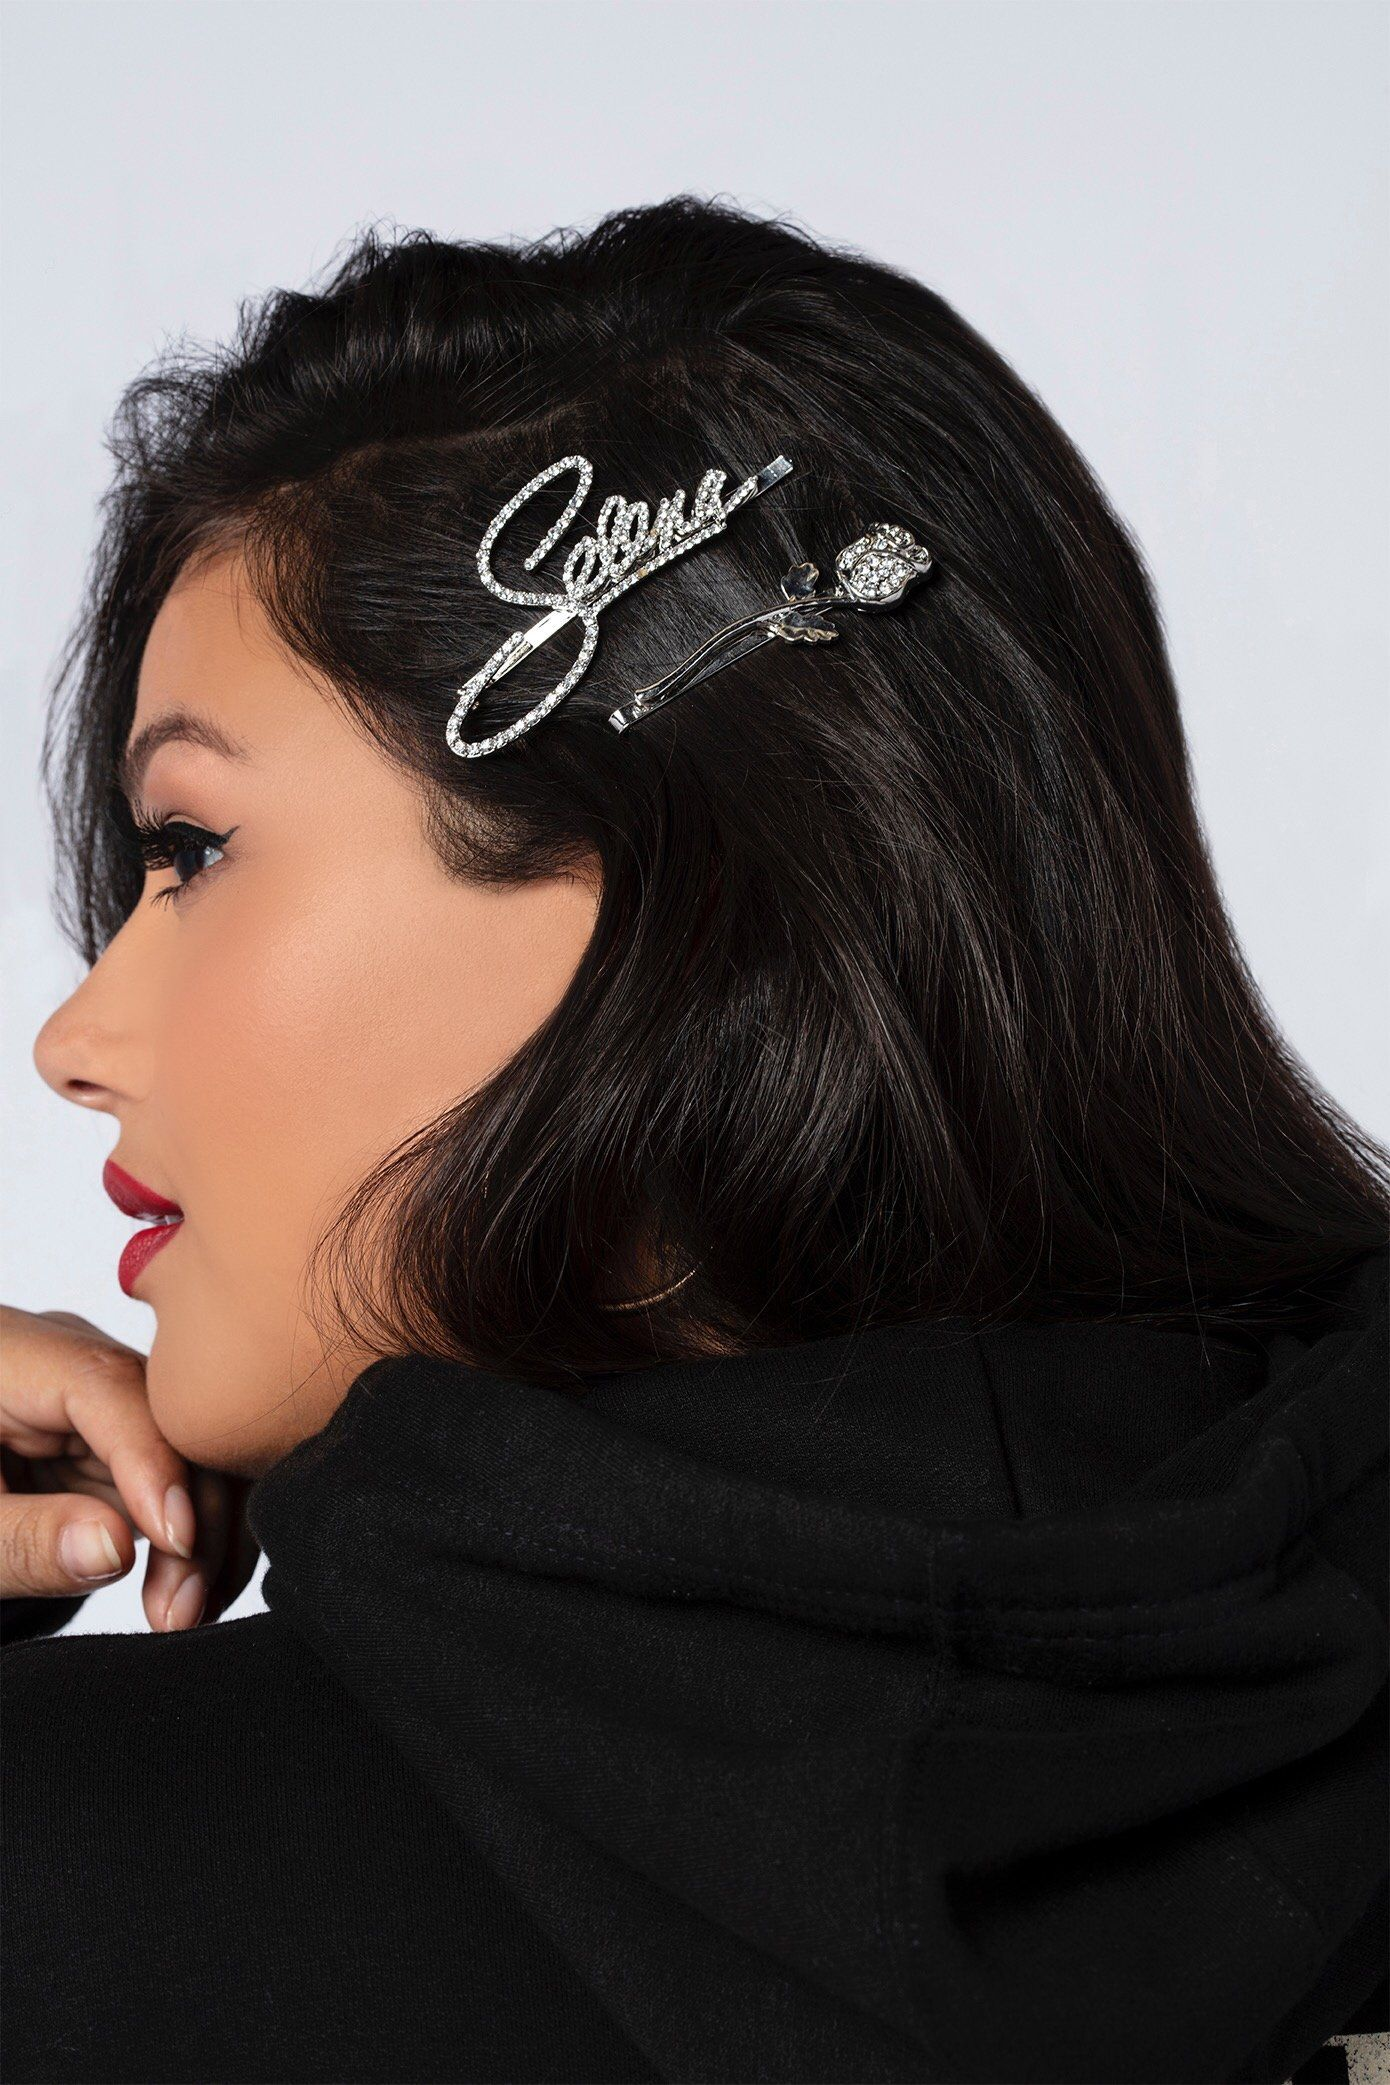 Selena\u2019s  Leather SPRING flower in large claw hair clip